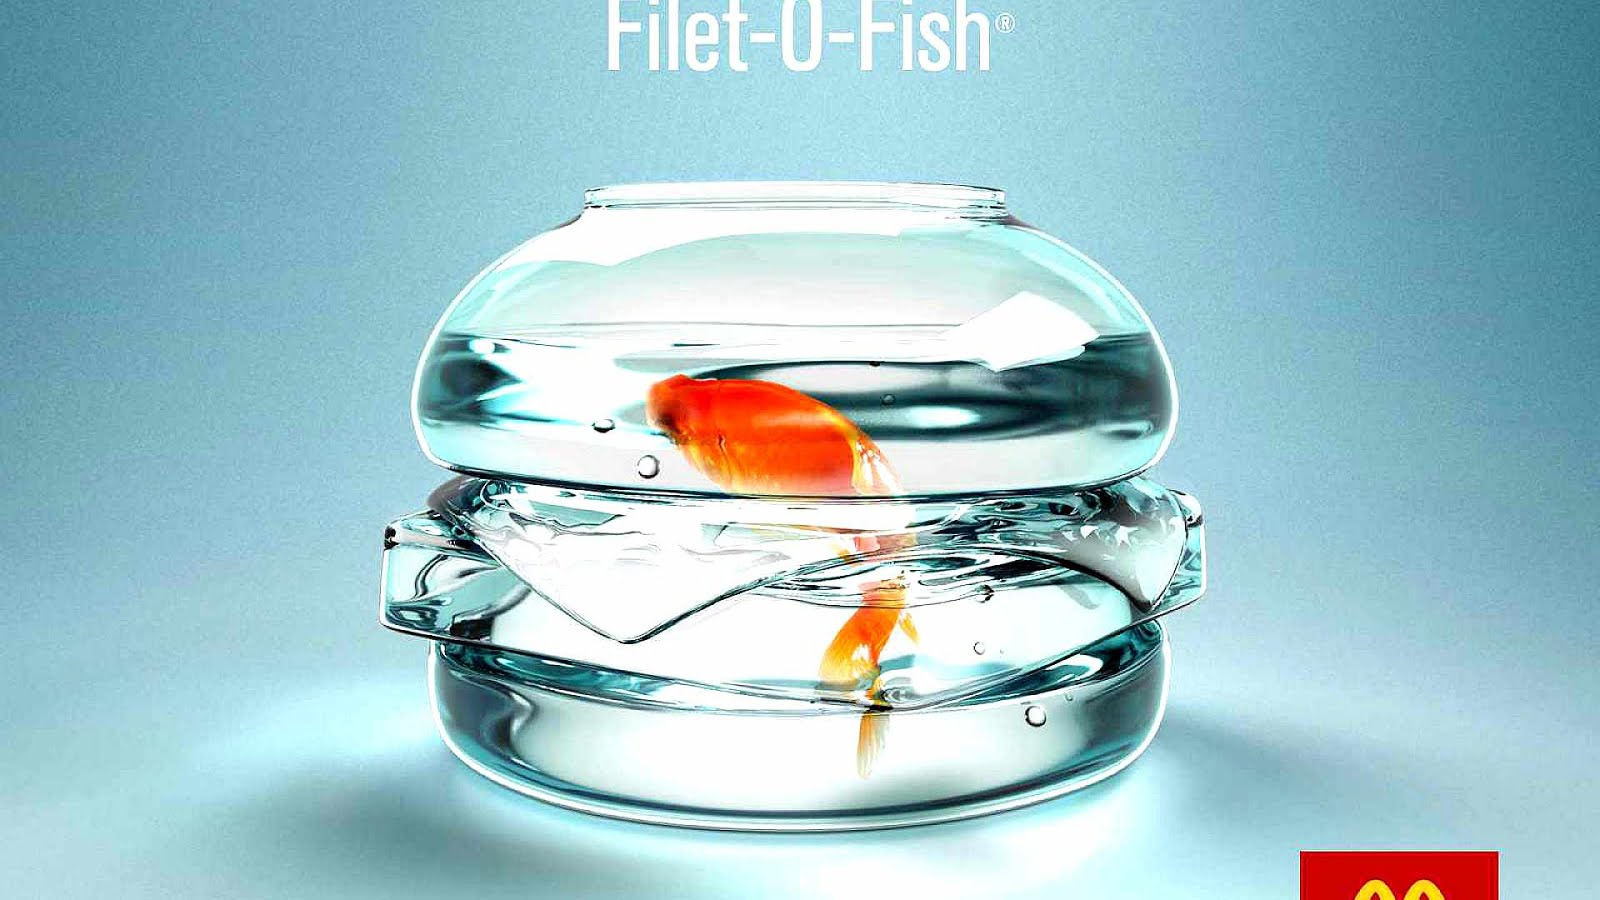 Filet o fish commercial for Mcdonalds fish calories